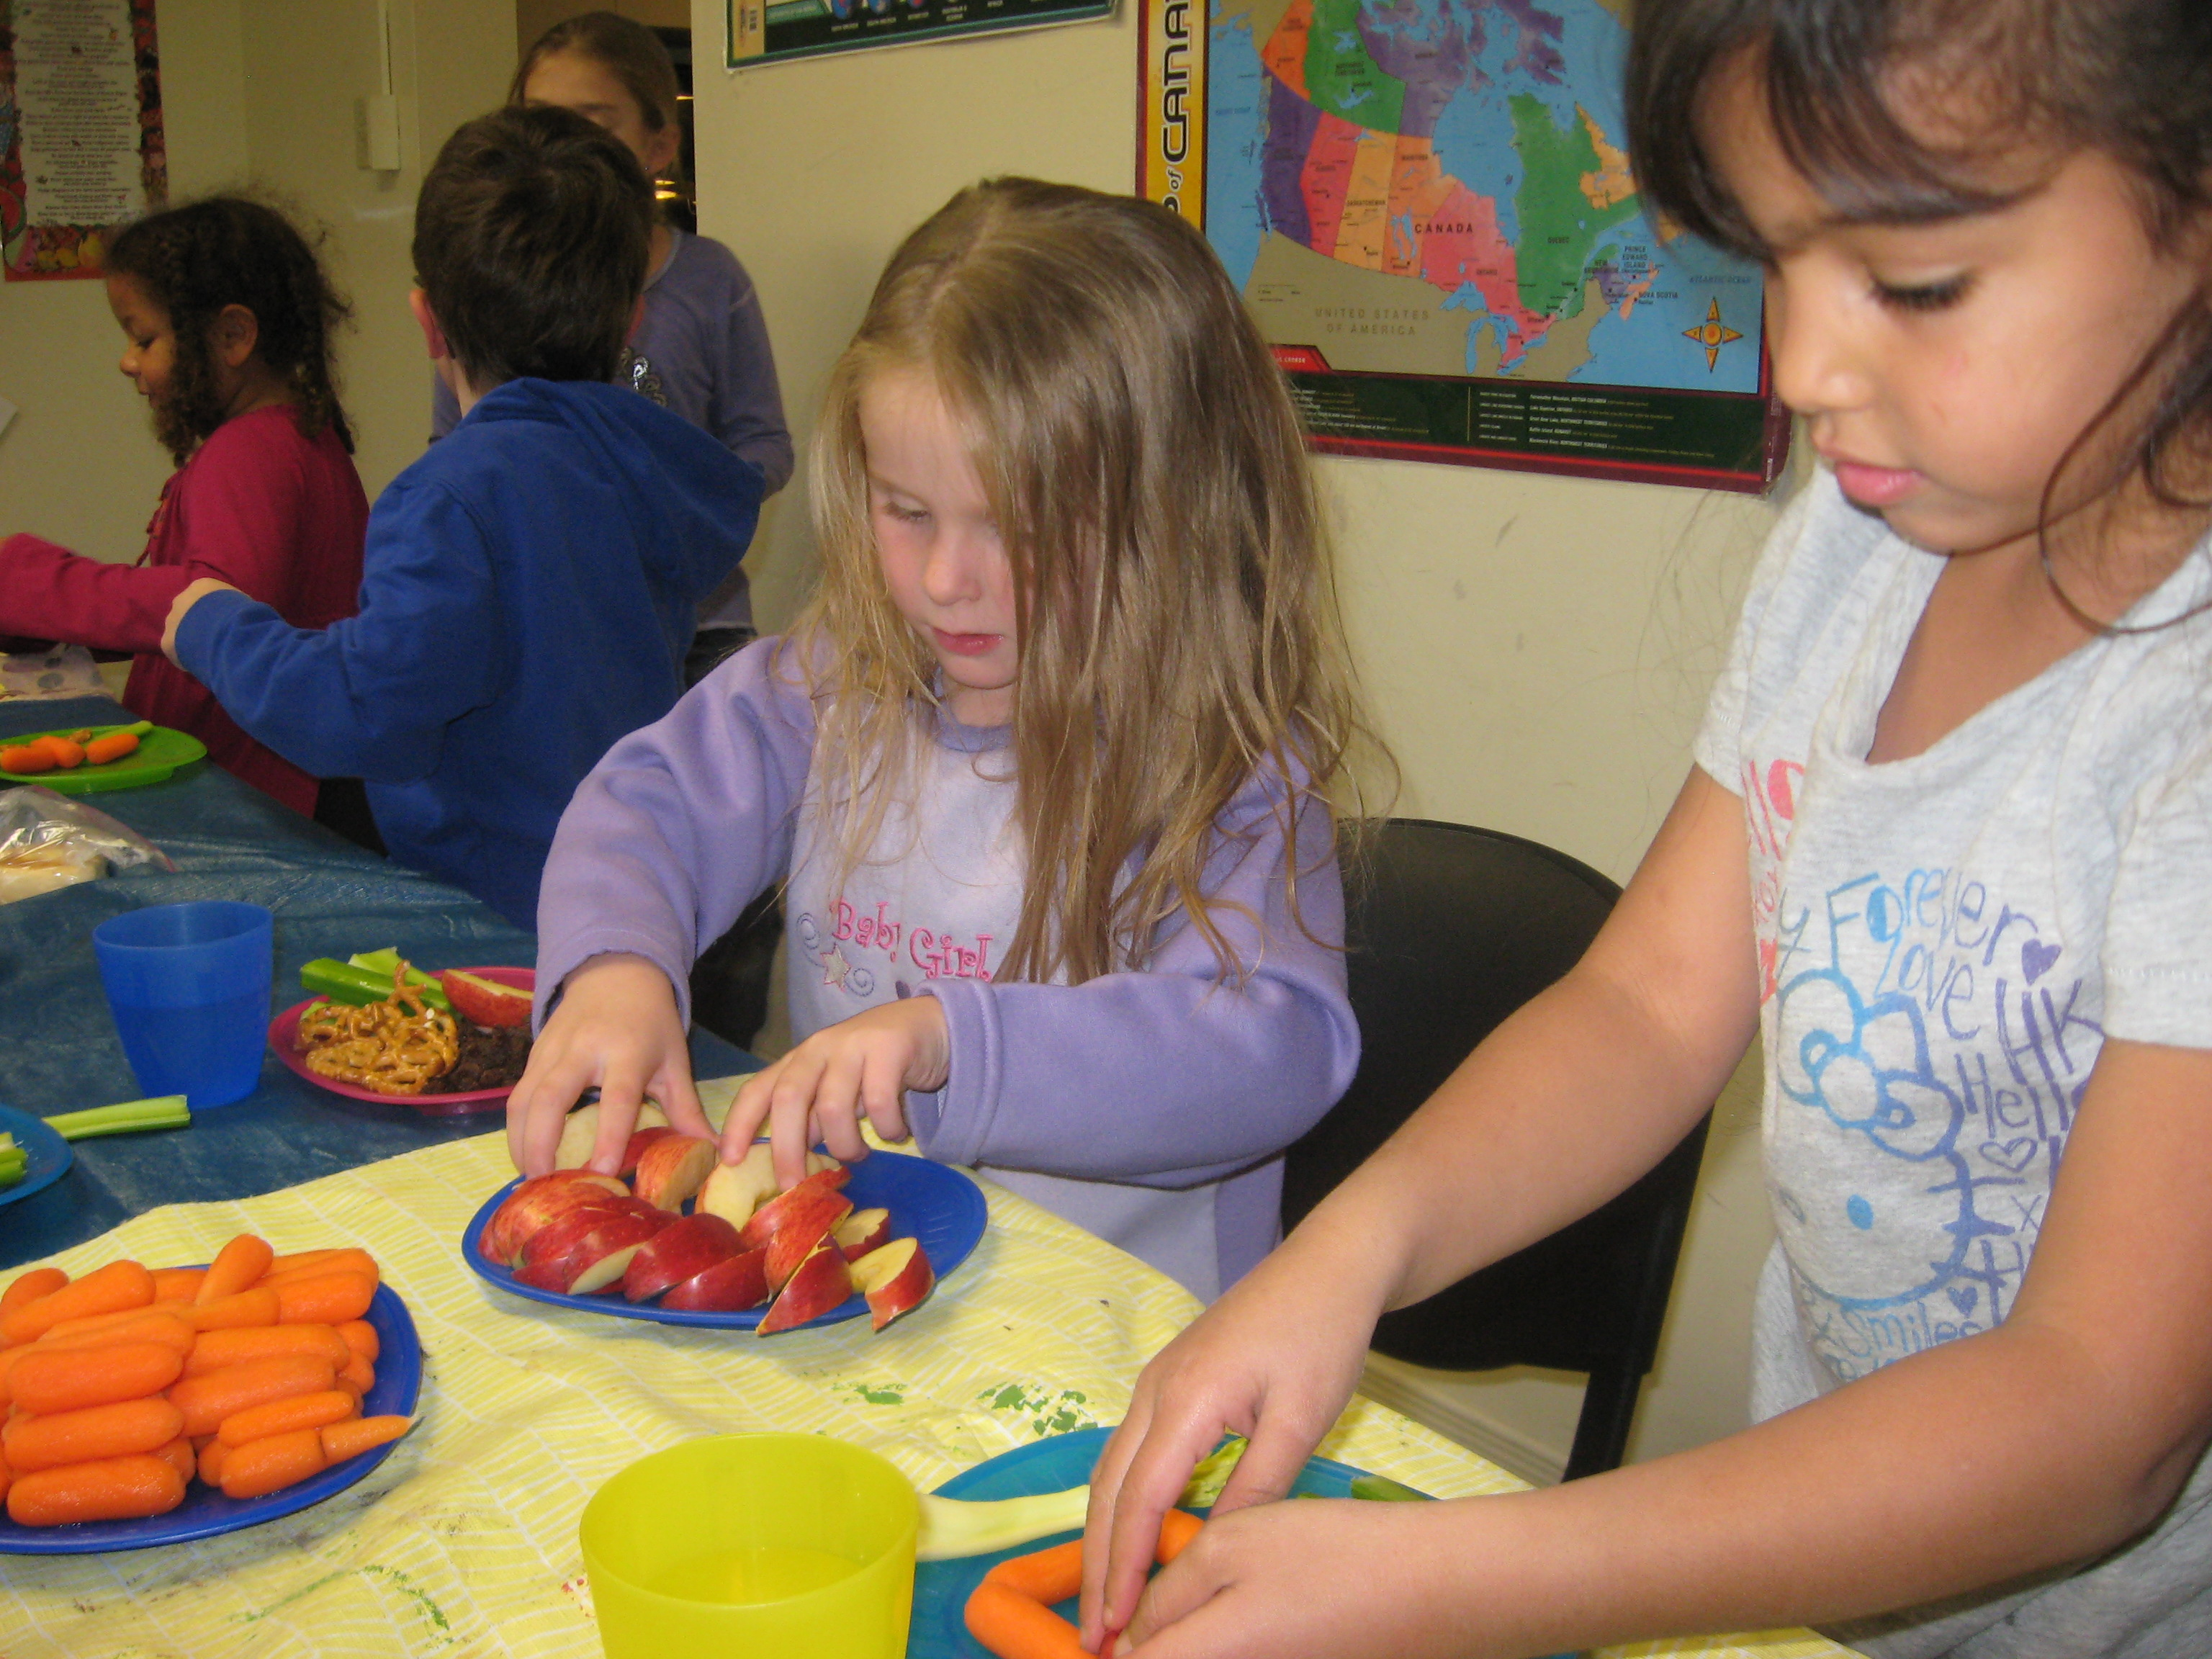 Children preparing plates of food